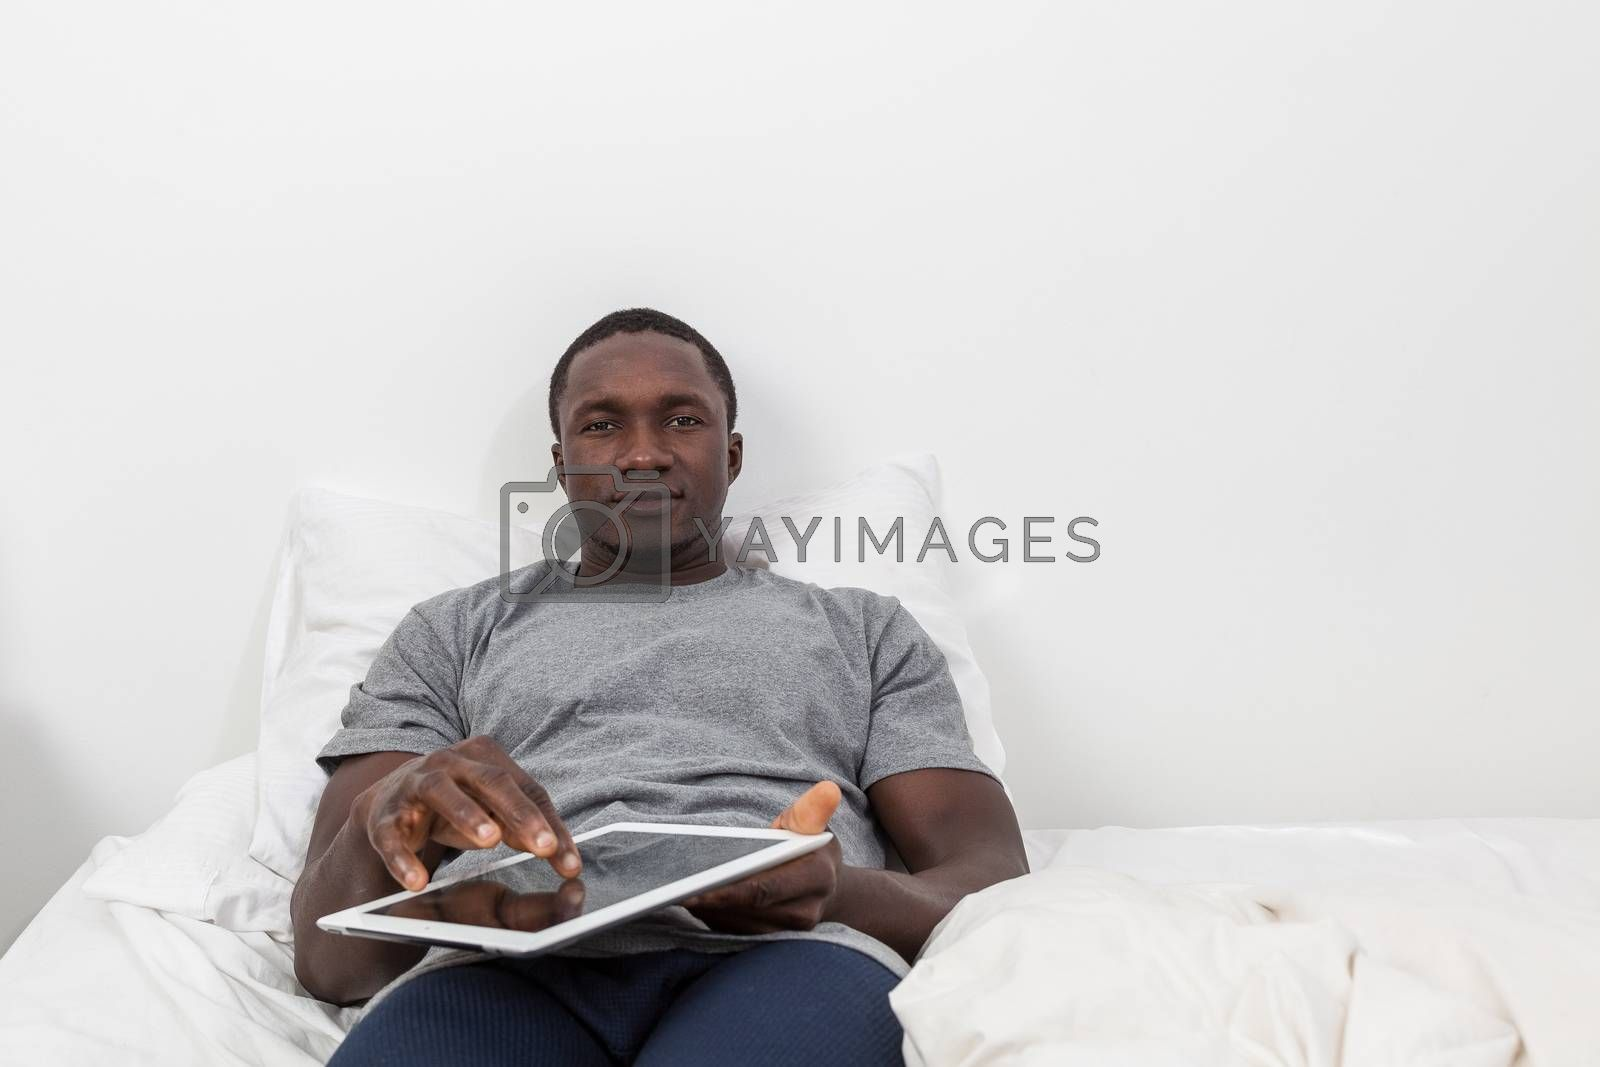 Man touching the screen of his tablet